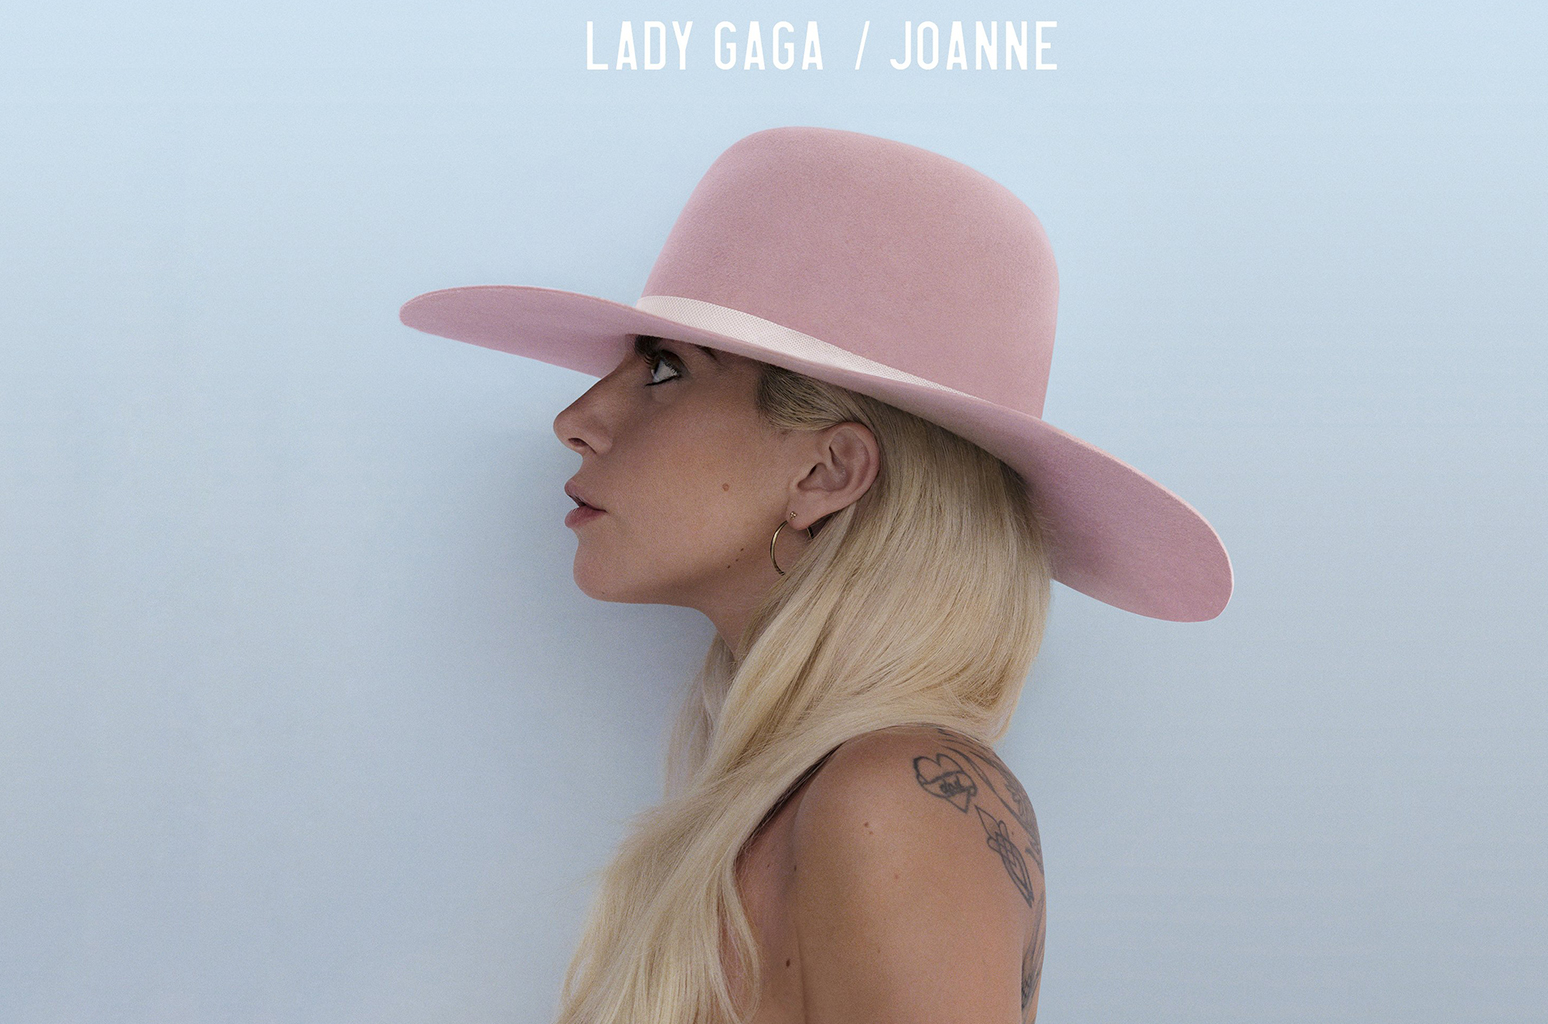 Joanne: Lady Gaga, the Queen of Pop herself, is going to have her fifth studio album released, which promises to stray away from her mixed third album Artpop. The album's featured single,